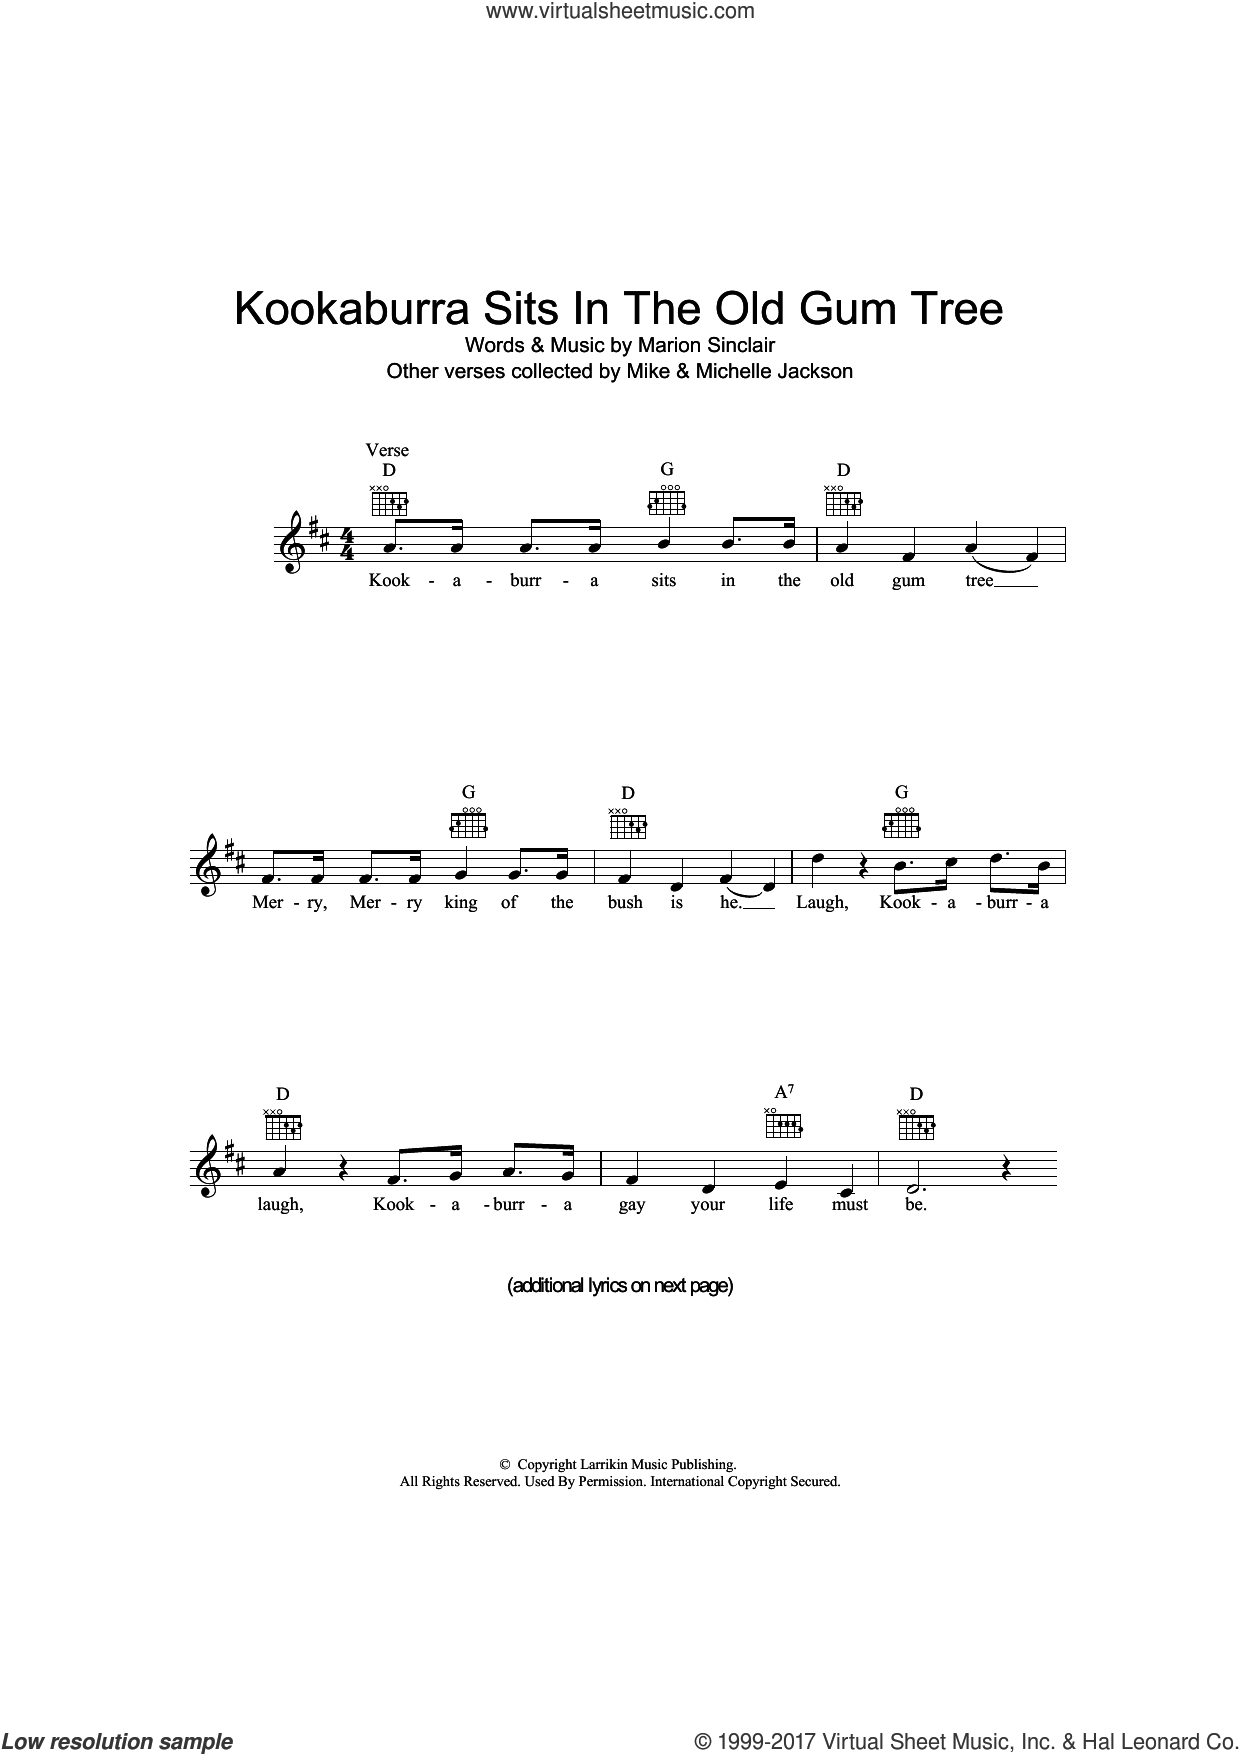 Kookaburra Sits In The Old Gum Tree sheet music for voice and other instruments (fake book) by Marion Sinclair, intermediate skill level